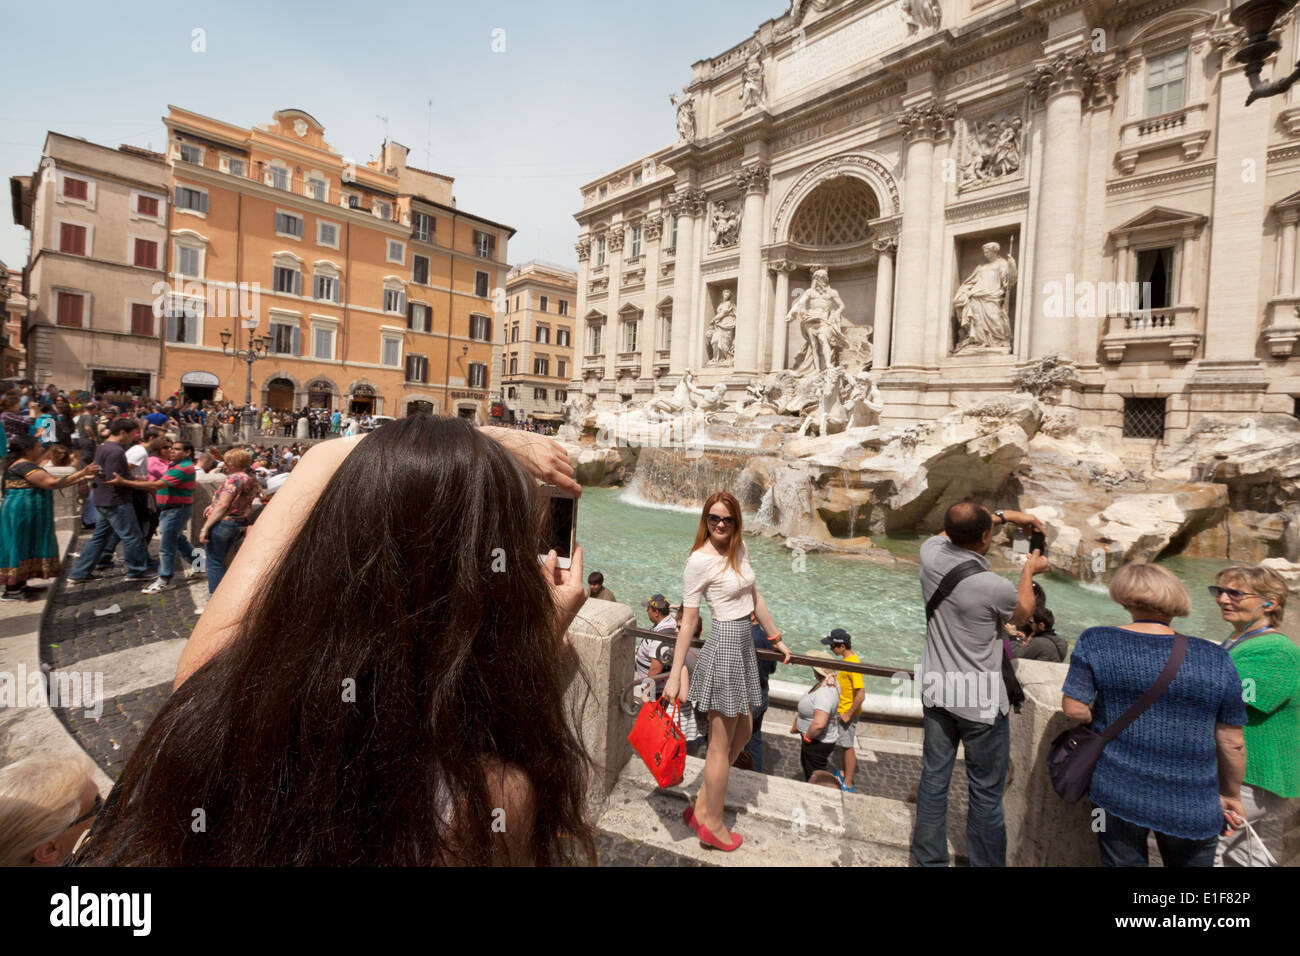 People taking photos at the Trevi fountain, Rome Italy Europe - Stock Image